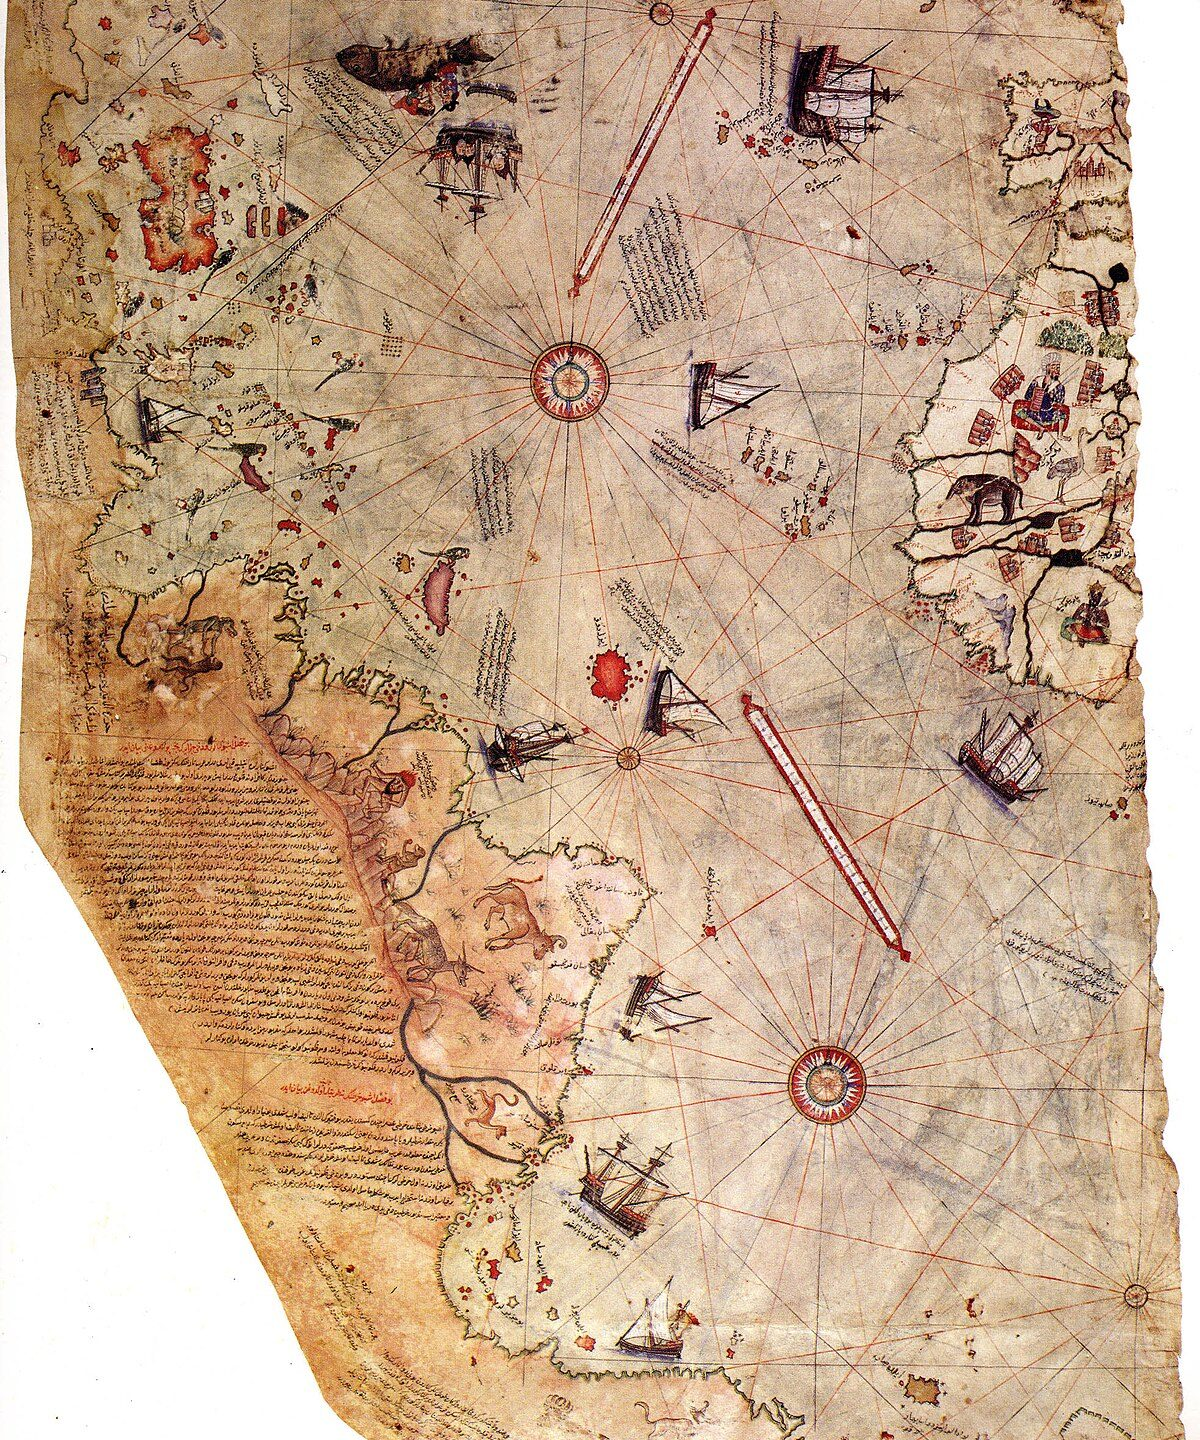 Piri Reis Map: Explained and Elaborated